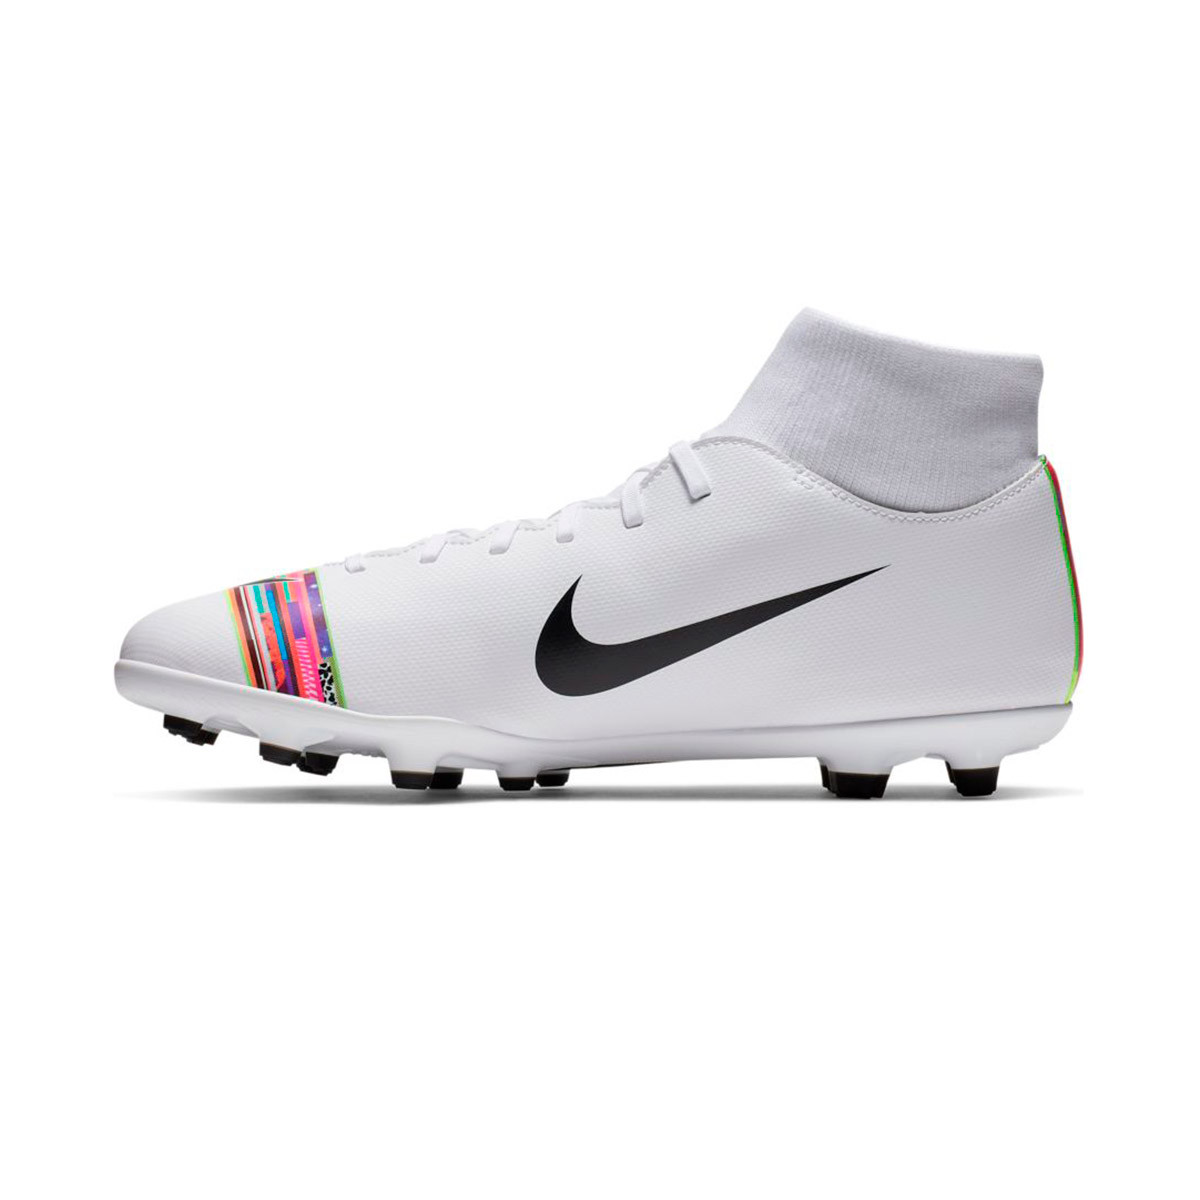 the latest 8b761 68438 Football Boots Nike Mercurial Superfly VI Club LVL UP MG White-Black -  Football store Fútbol Emotion